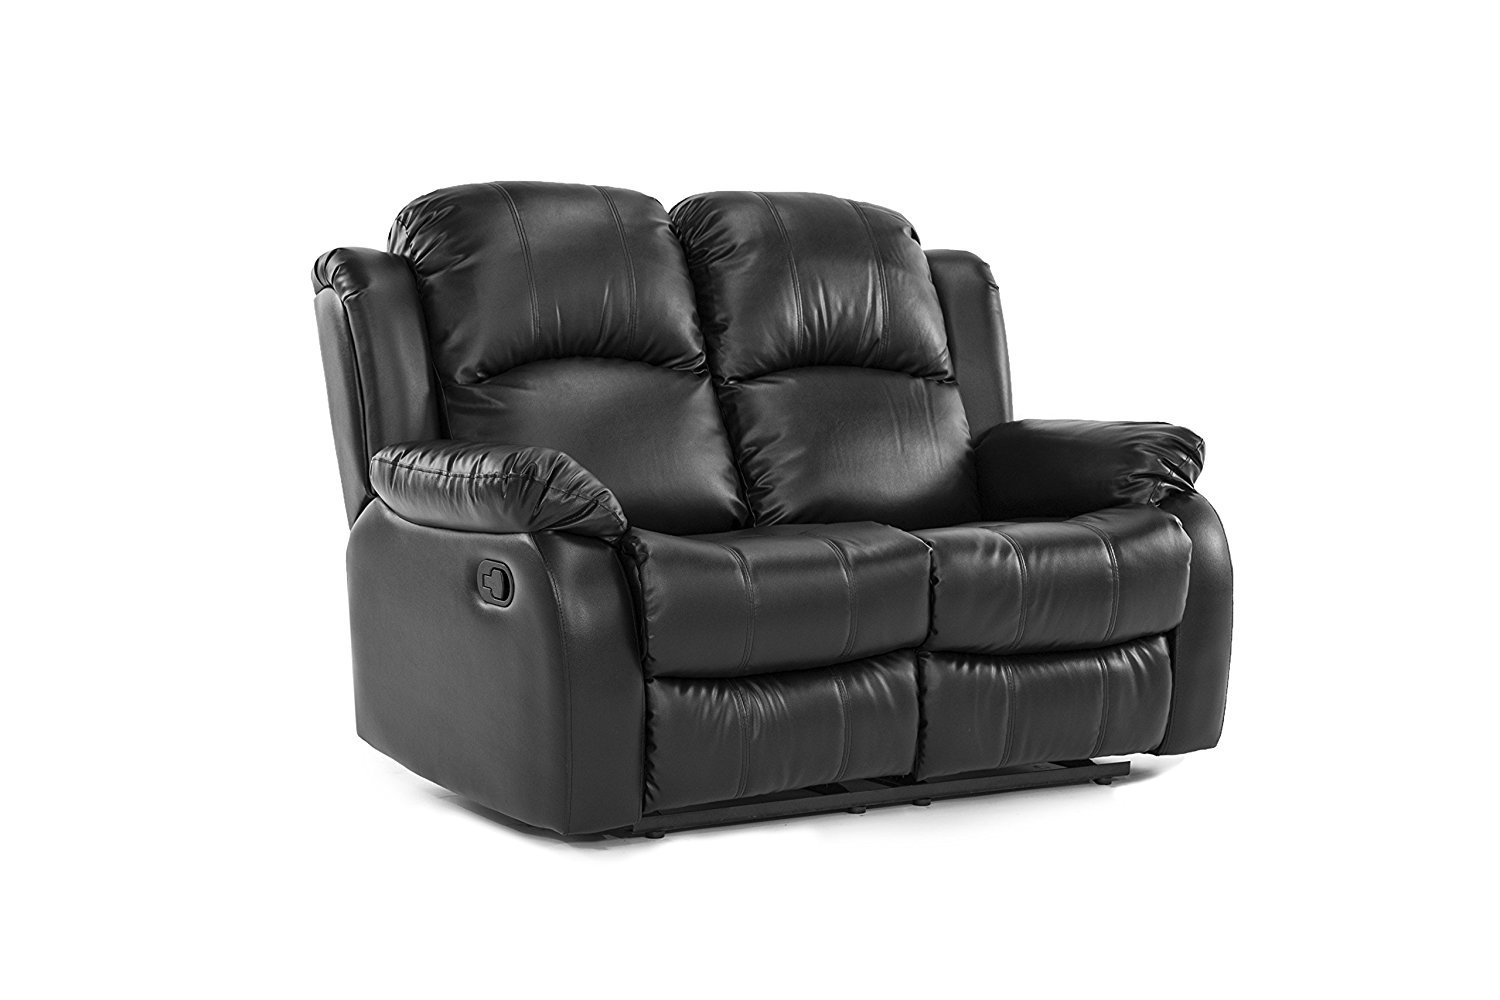 taylor king sofas ikea usa elegant double reclining loveseat – bonded leather living ...